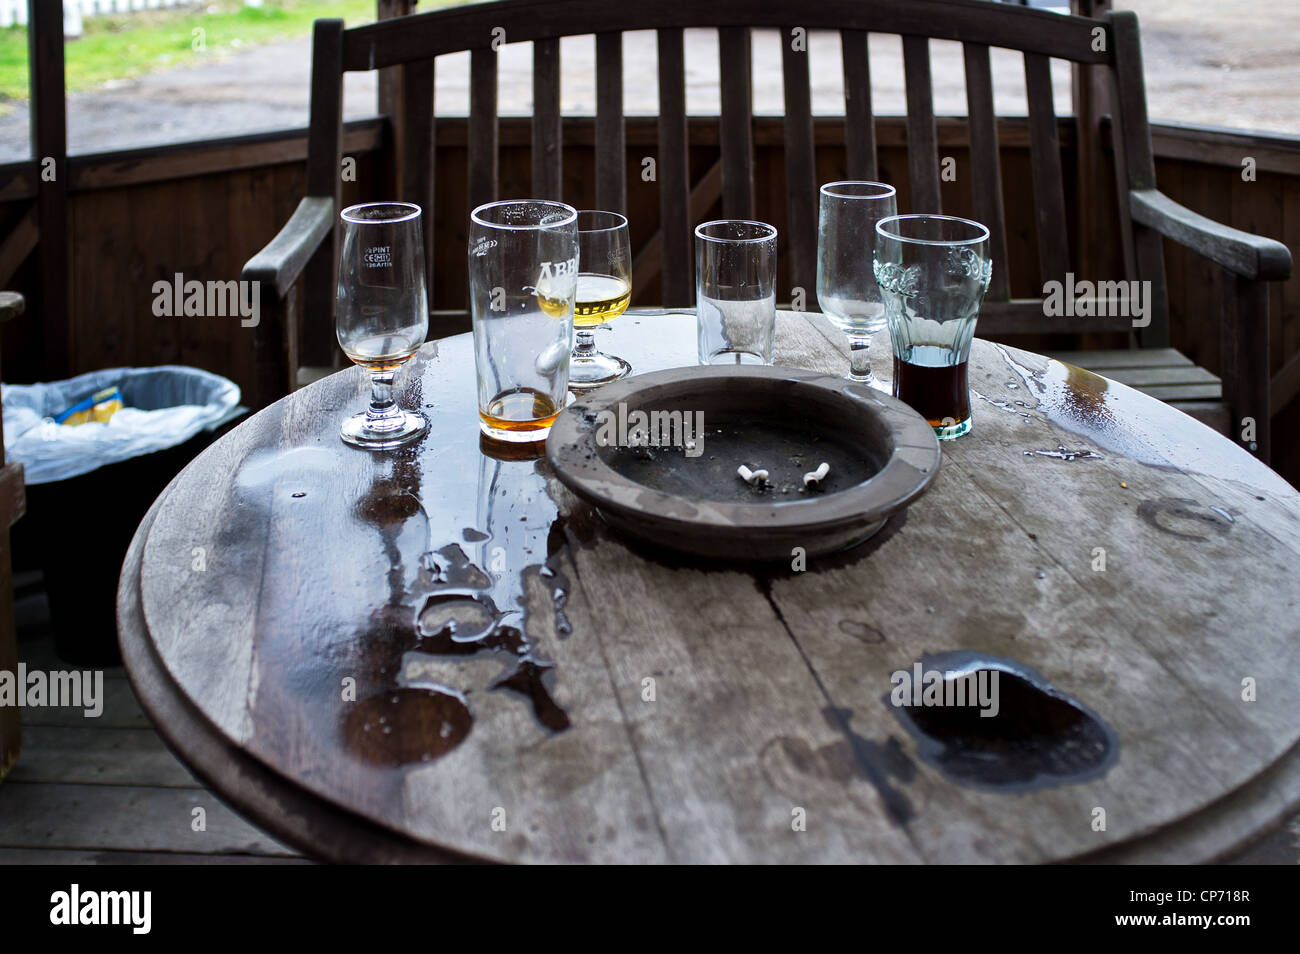 A pub table with ashtray and empty glasses - Stock Image